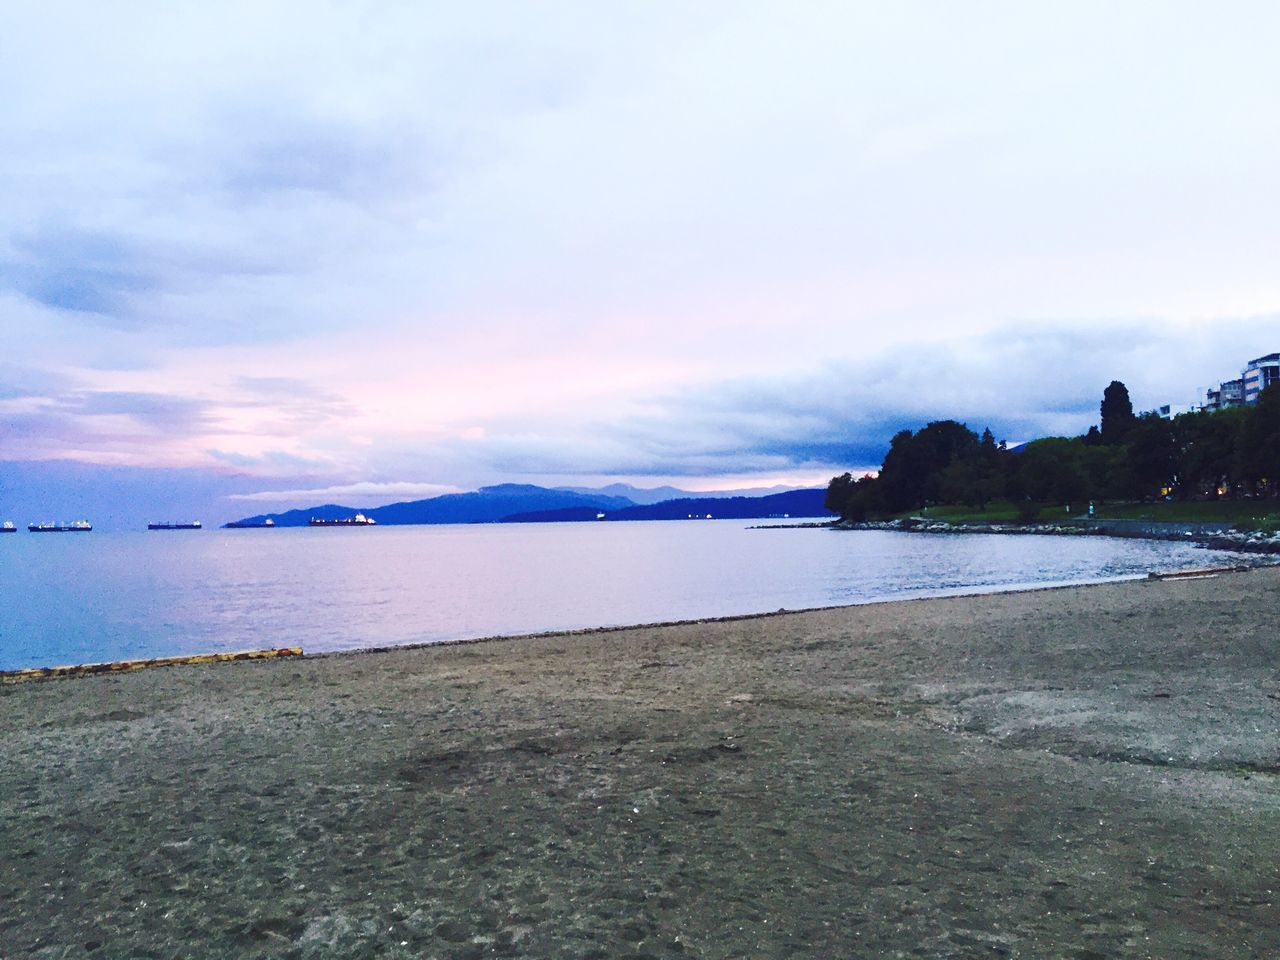 Inspirational Check This Out Hanging Out Hello World Relaxing Taking Photos Enjoying Life Vancity Vancouver Sunrise Beautiful Beach Colors Clouds And Sky Other Perspectives Taking Photos Walking Around